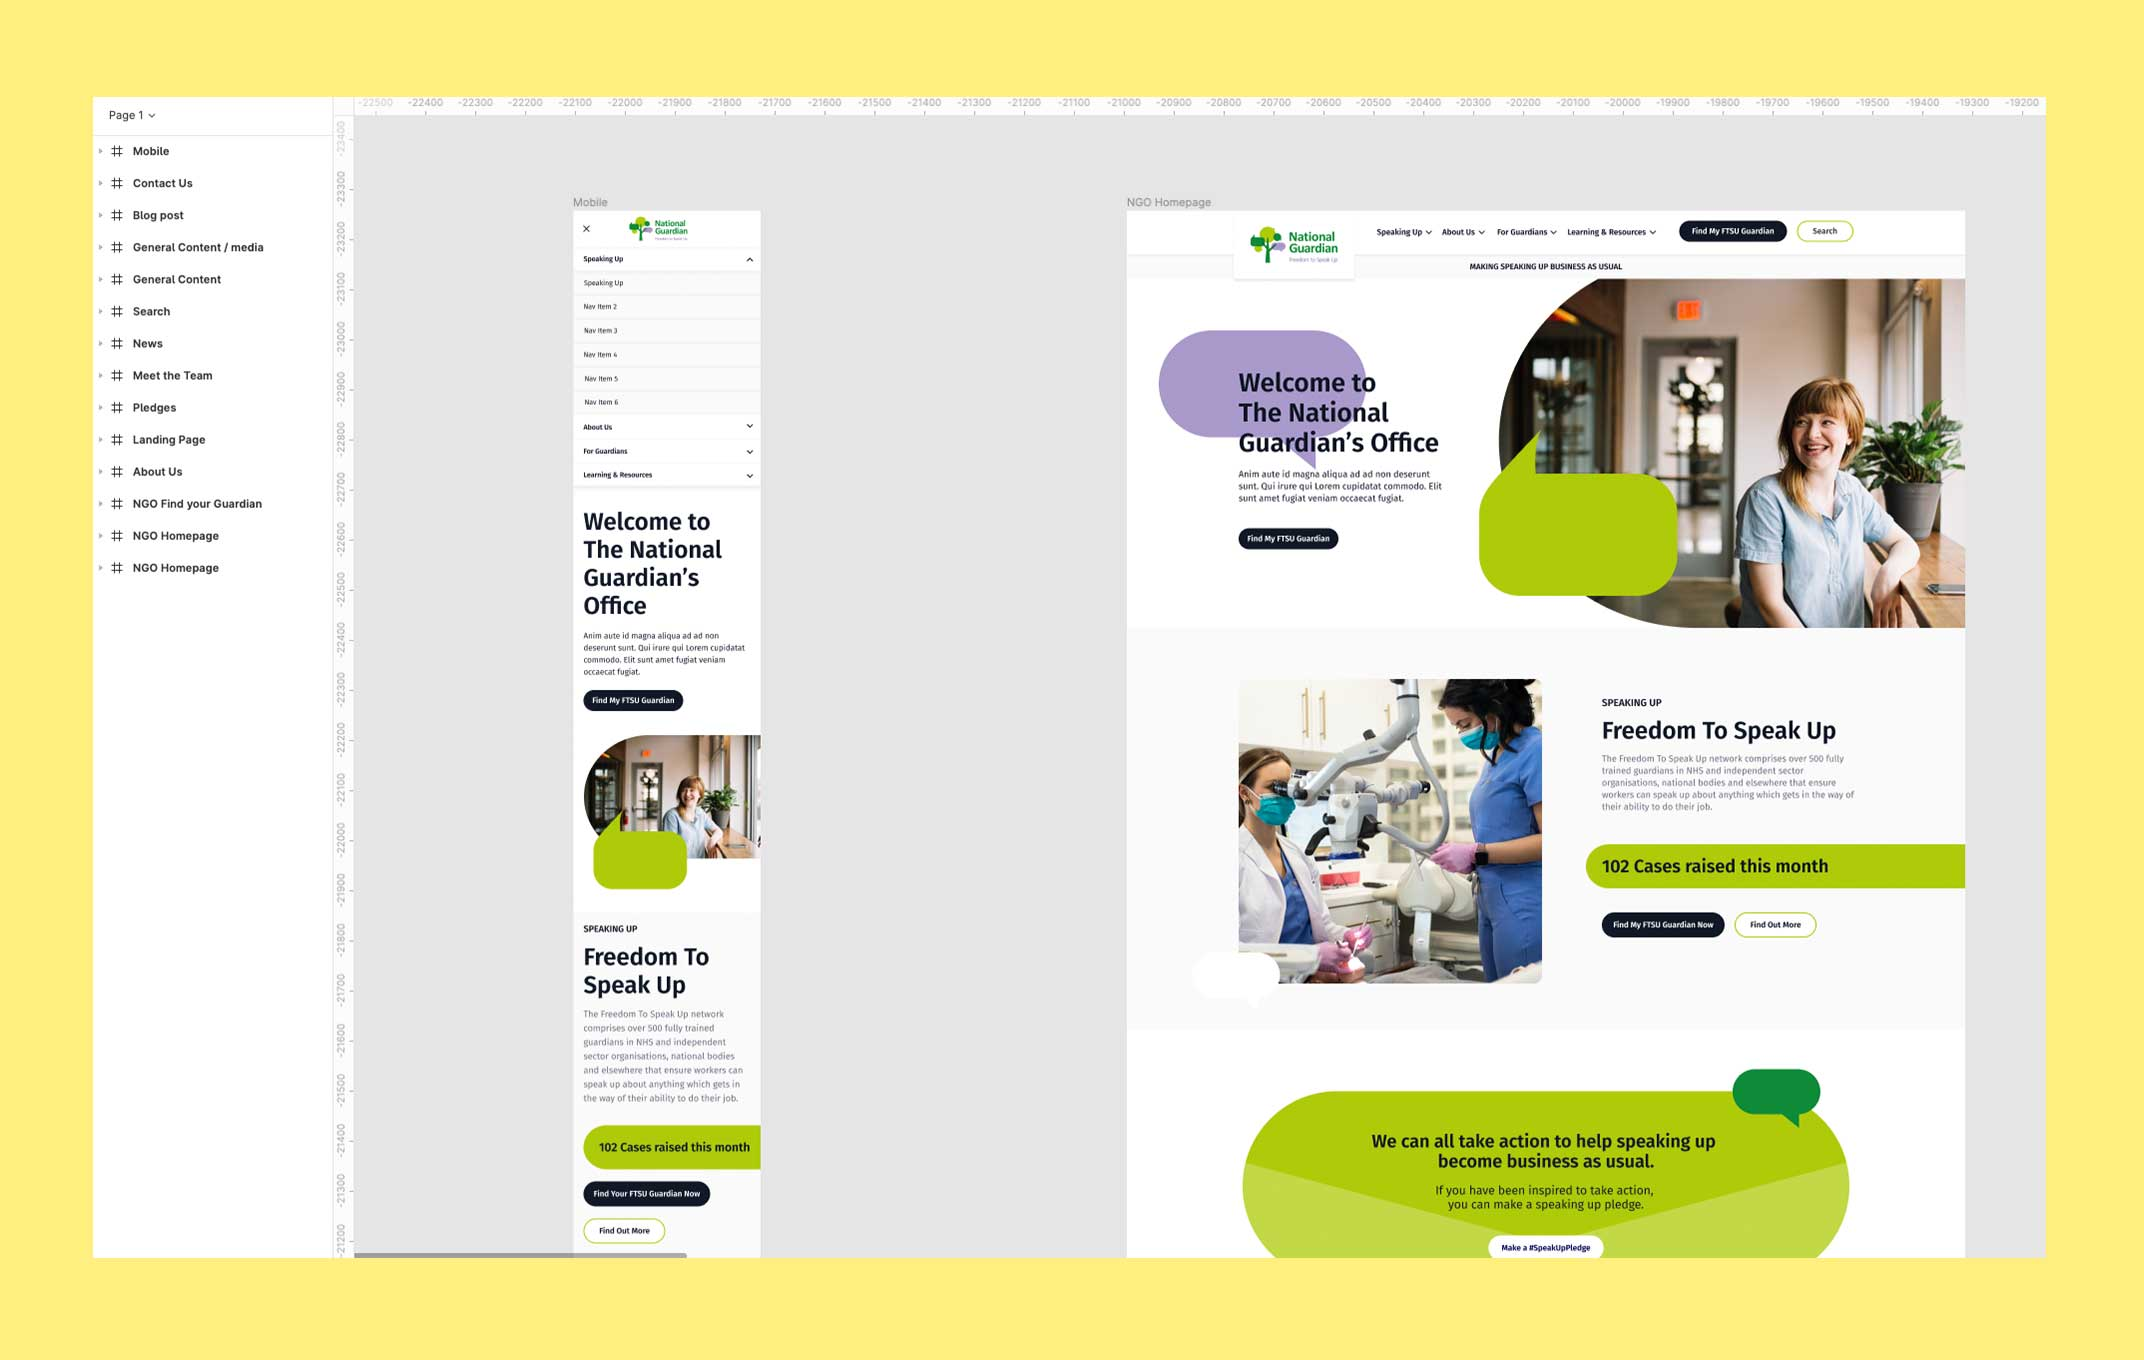 Screenshot of design work showing mobile and desktop visuals for the National Guardian's Office